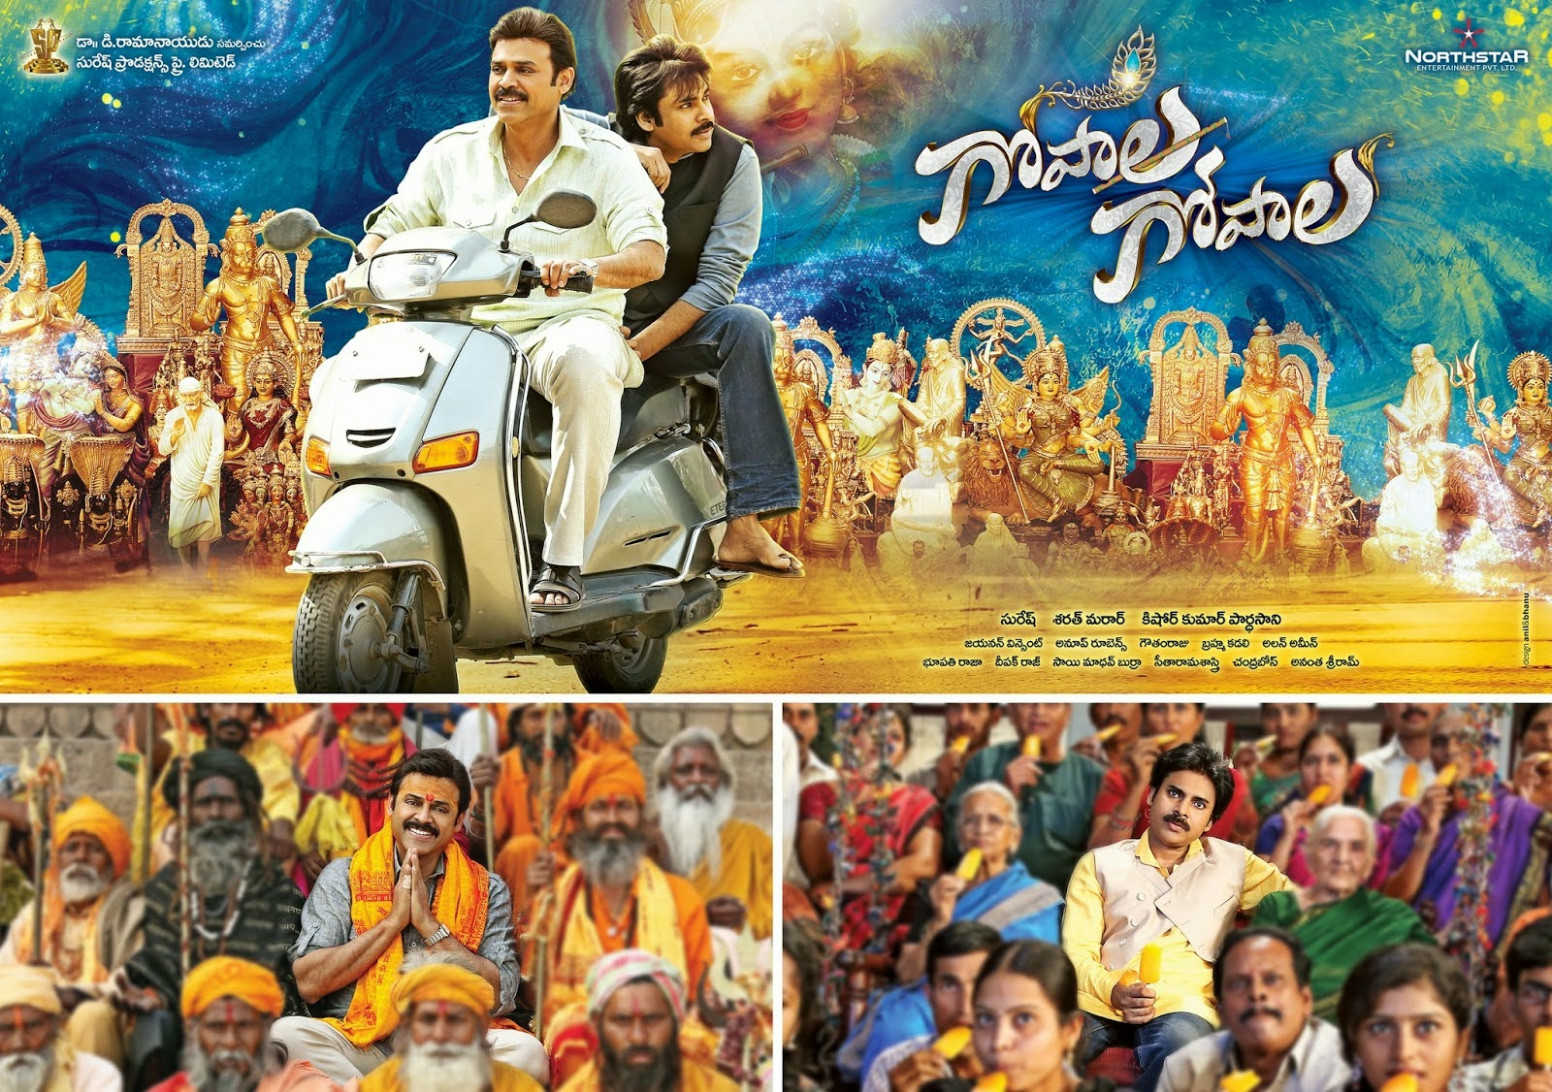 G Tollywood Movies MP3 Audio Songs List | Telugu MP3 Songs ...